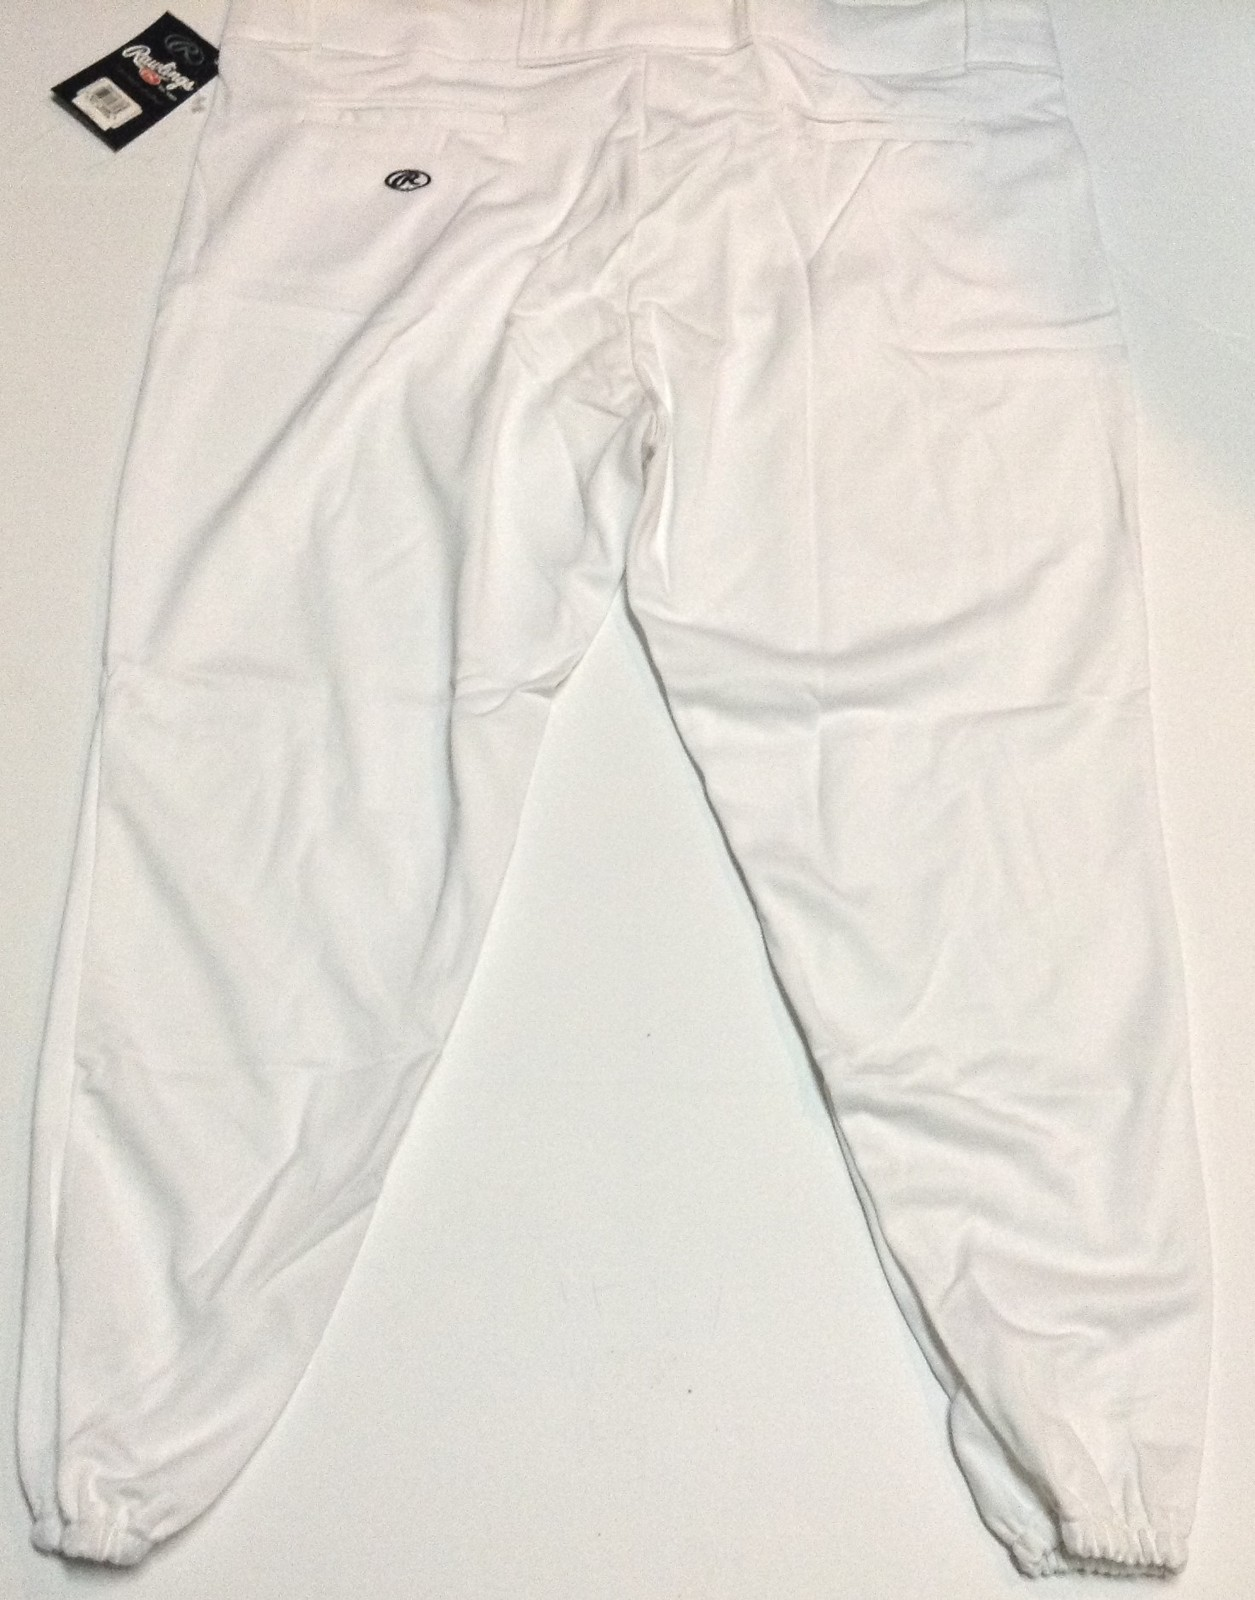 RAWLINGS Adult Baseball Uniform Pants NWT Sz 2XL White